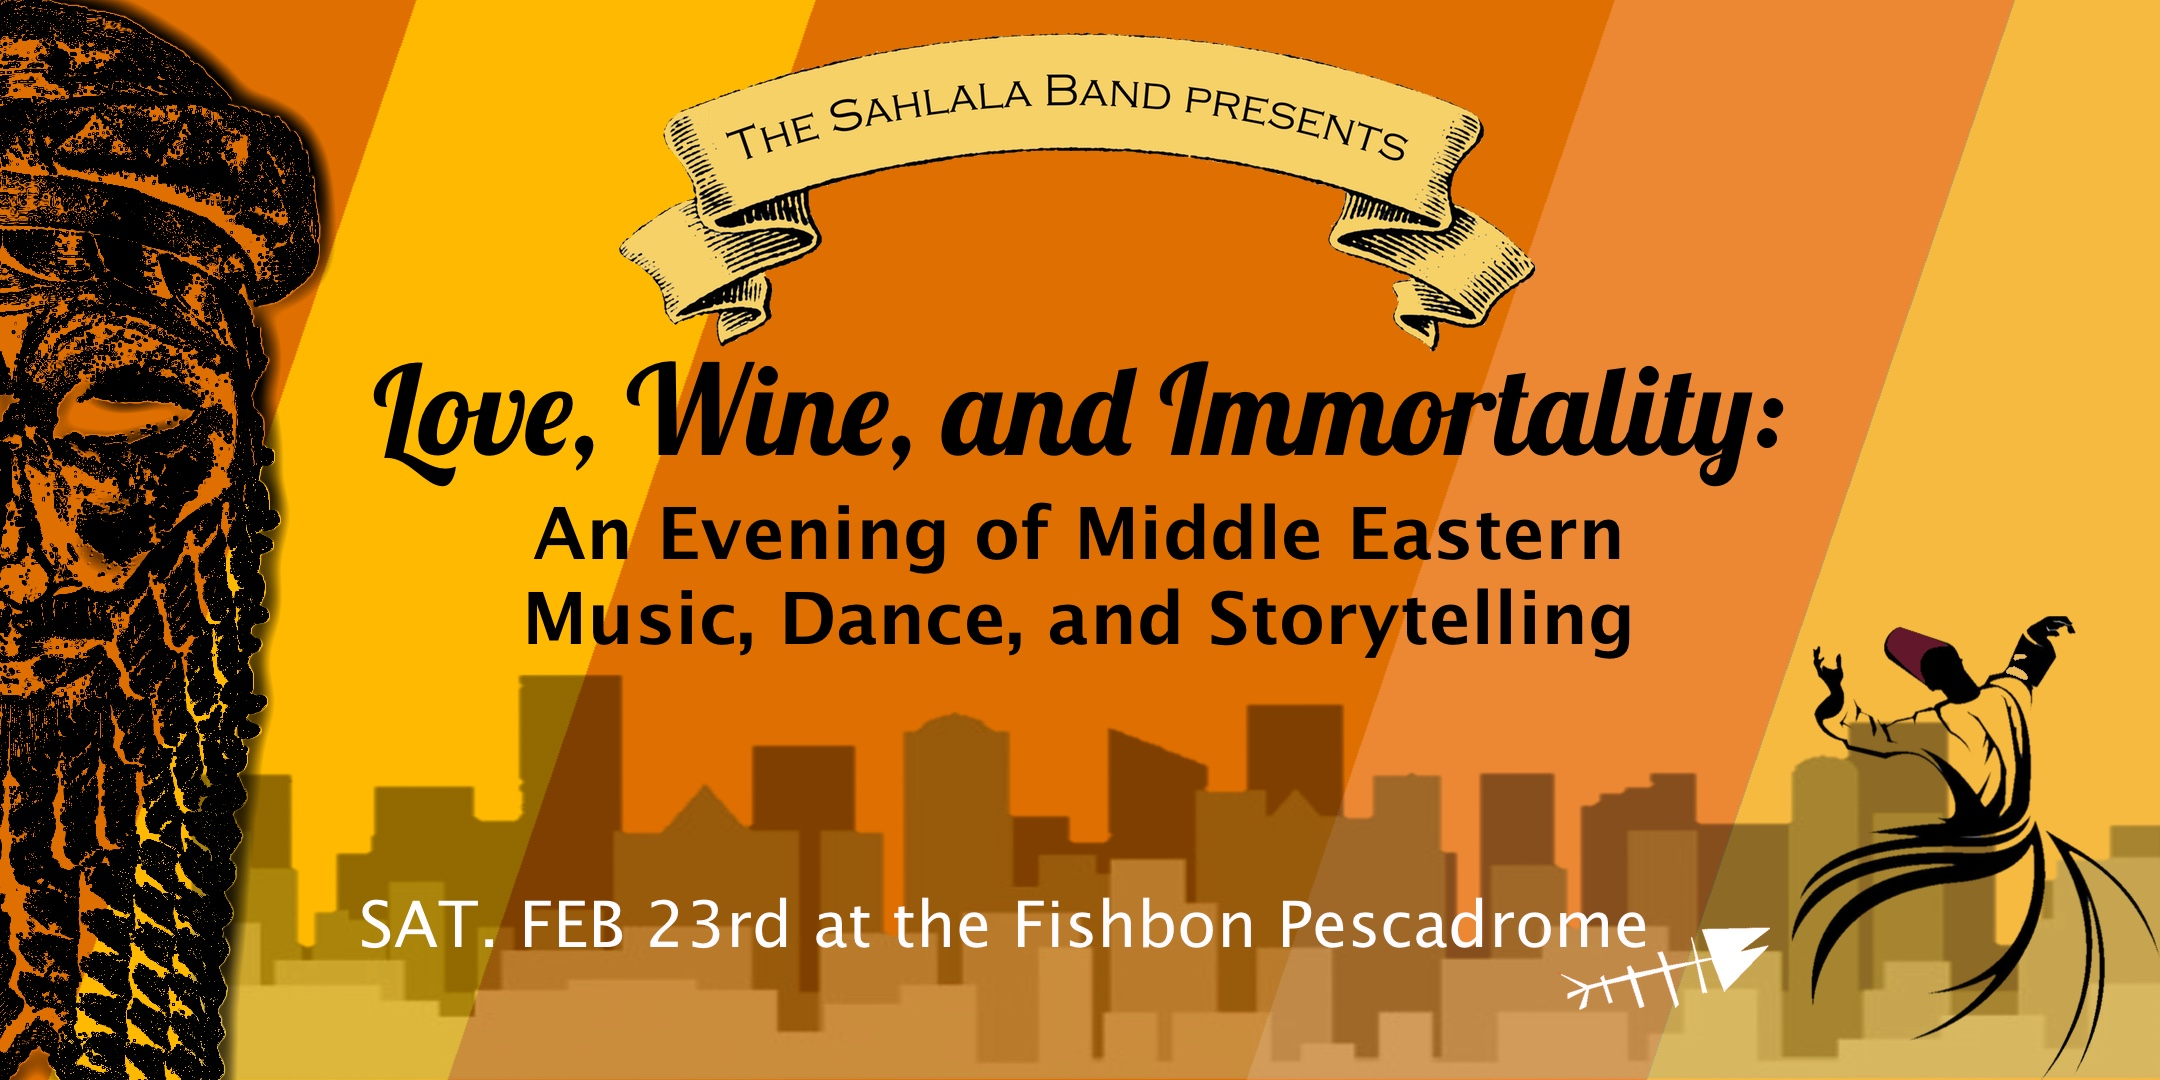 Love, Wine, and Immortality: An Evening of Middle Eastern